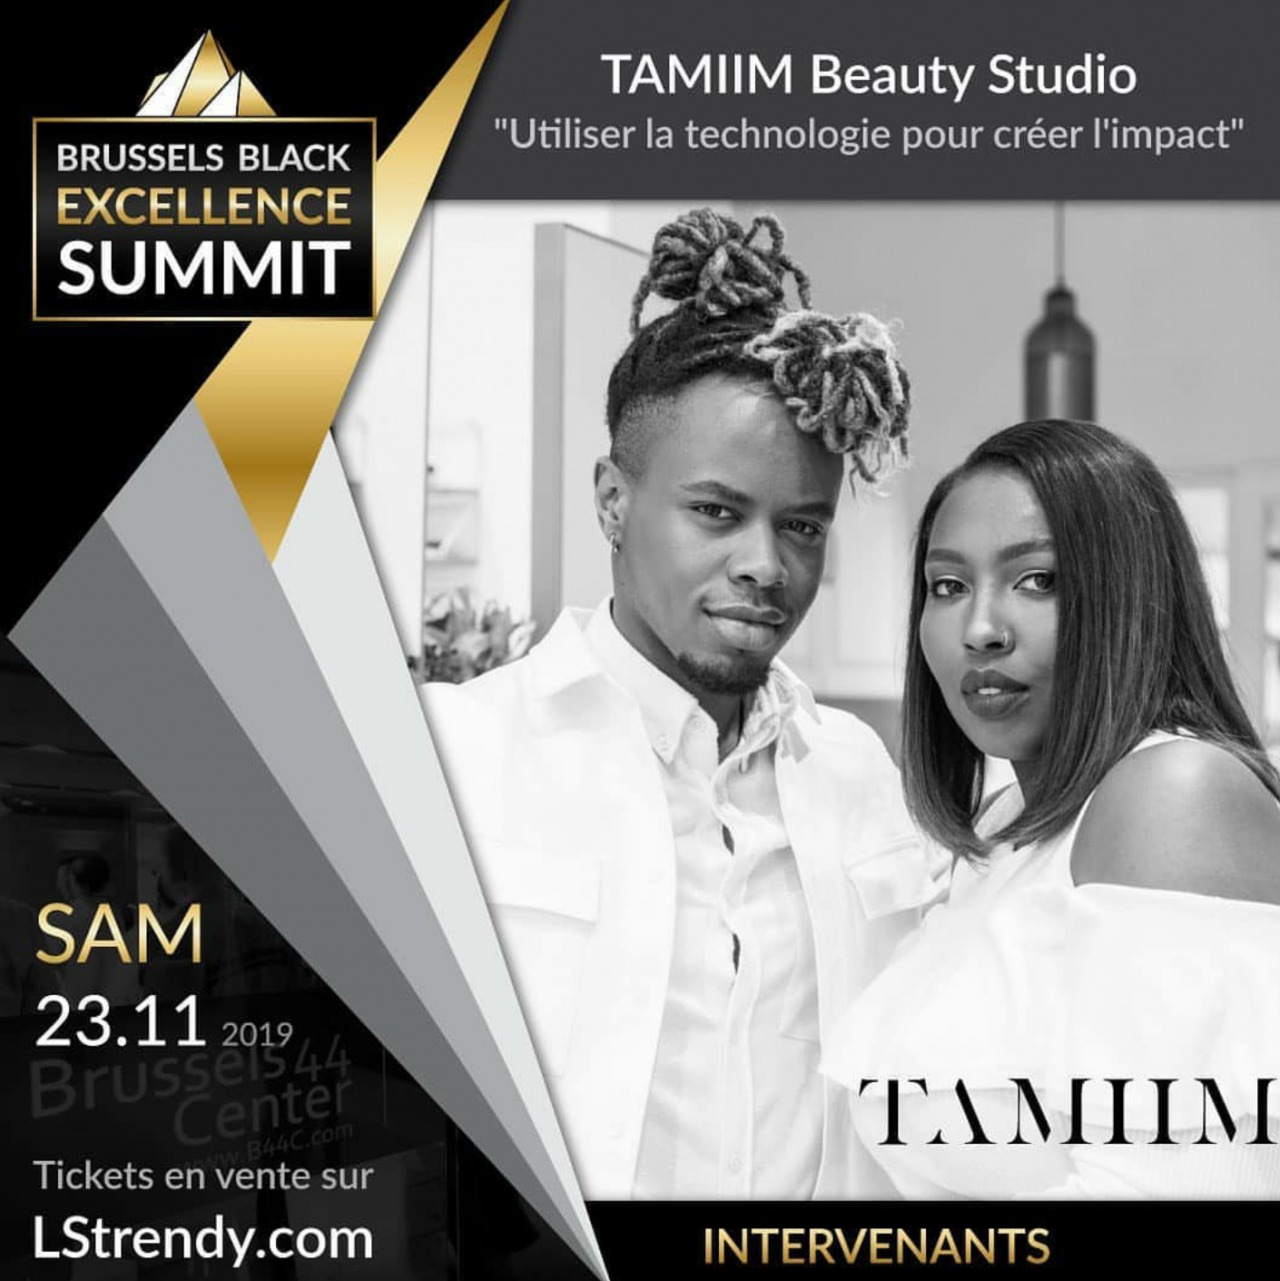 TAMIIM BEAUTY STUDIO